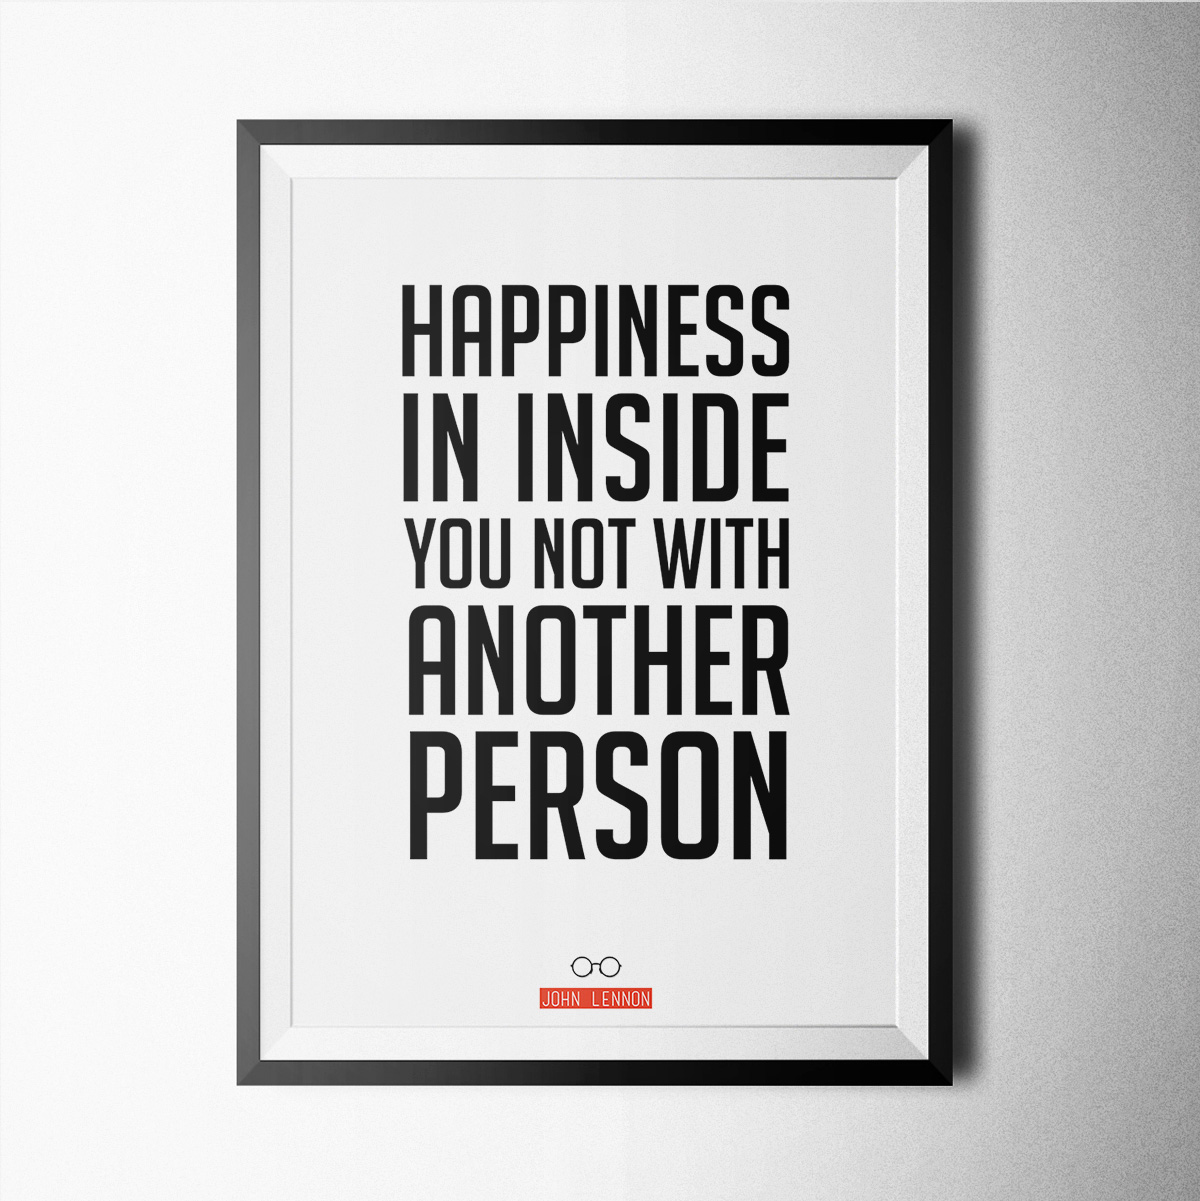 Happiness John Lennon Poster Print Wallart Minimal Black And White Quote Motivational Art Quotes Home Decor Sold By Raayt Art Prints On Storenvy